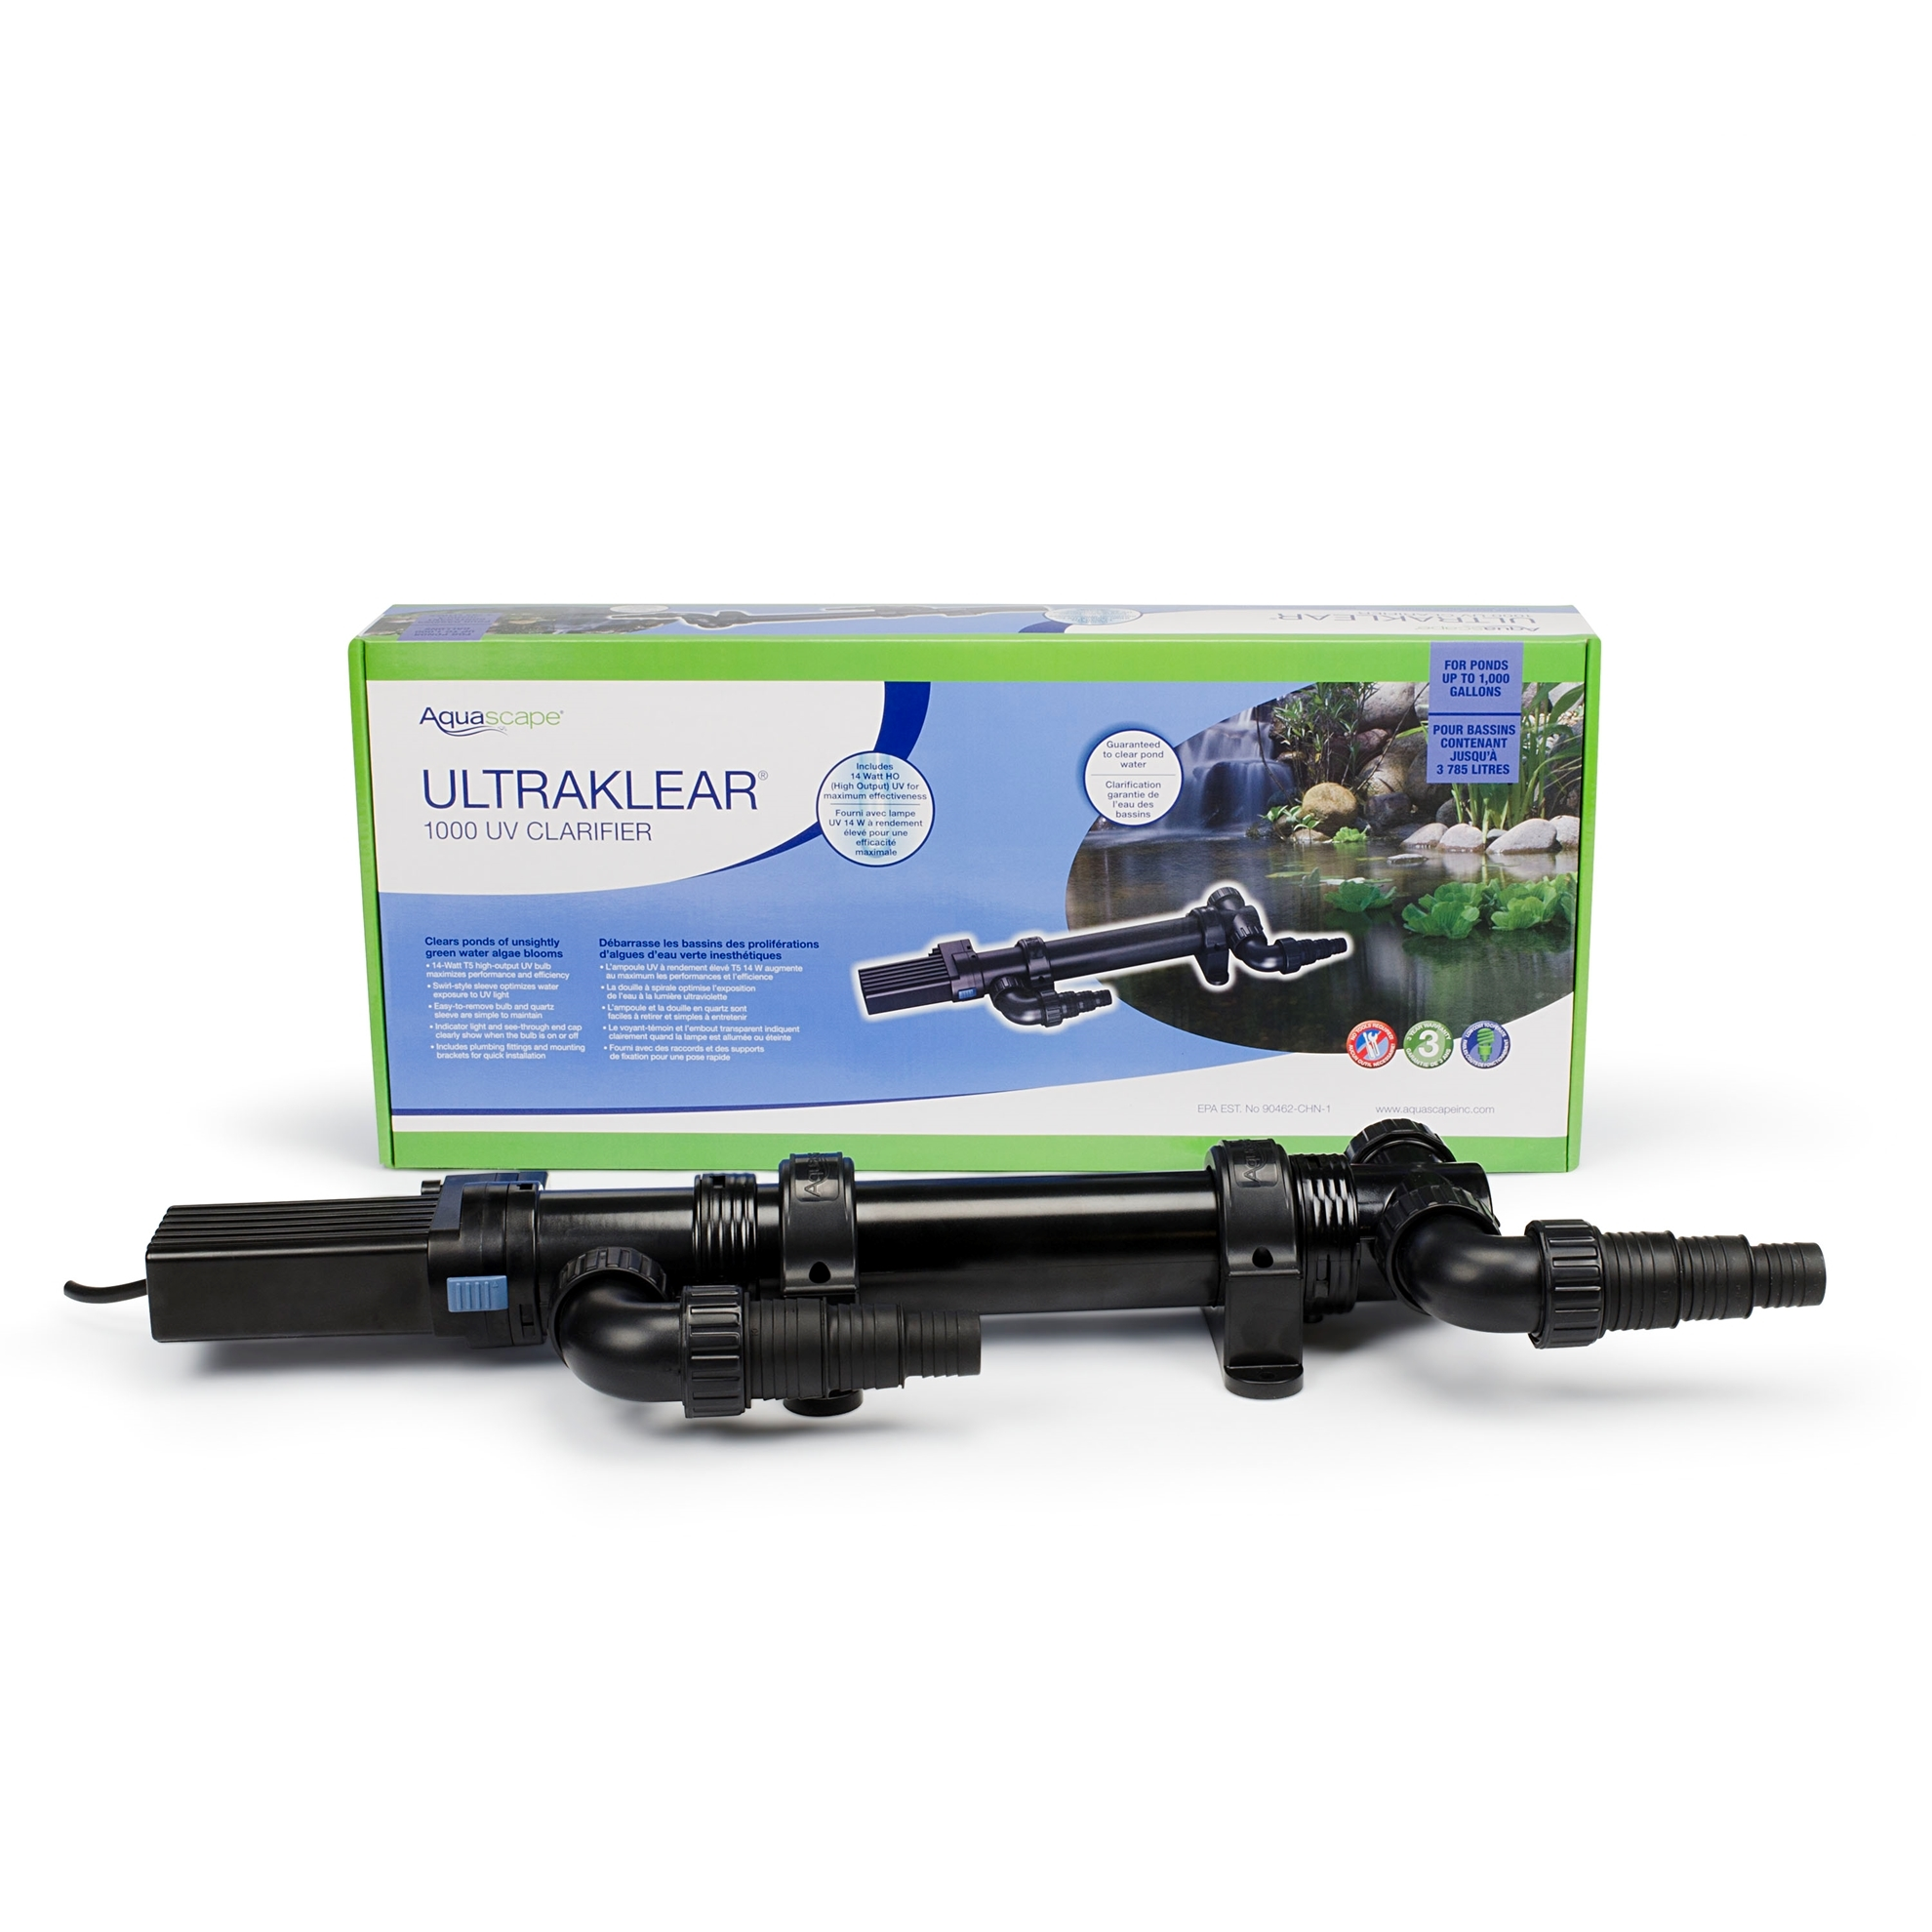 Aquascape UltraKlear 1000 UV Clarifier